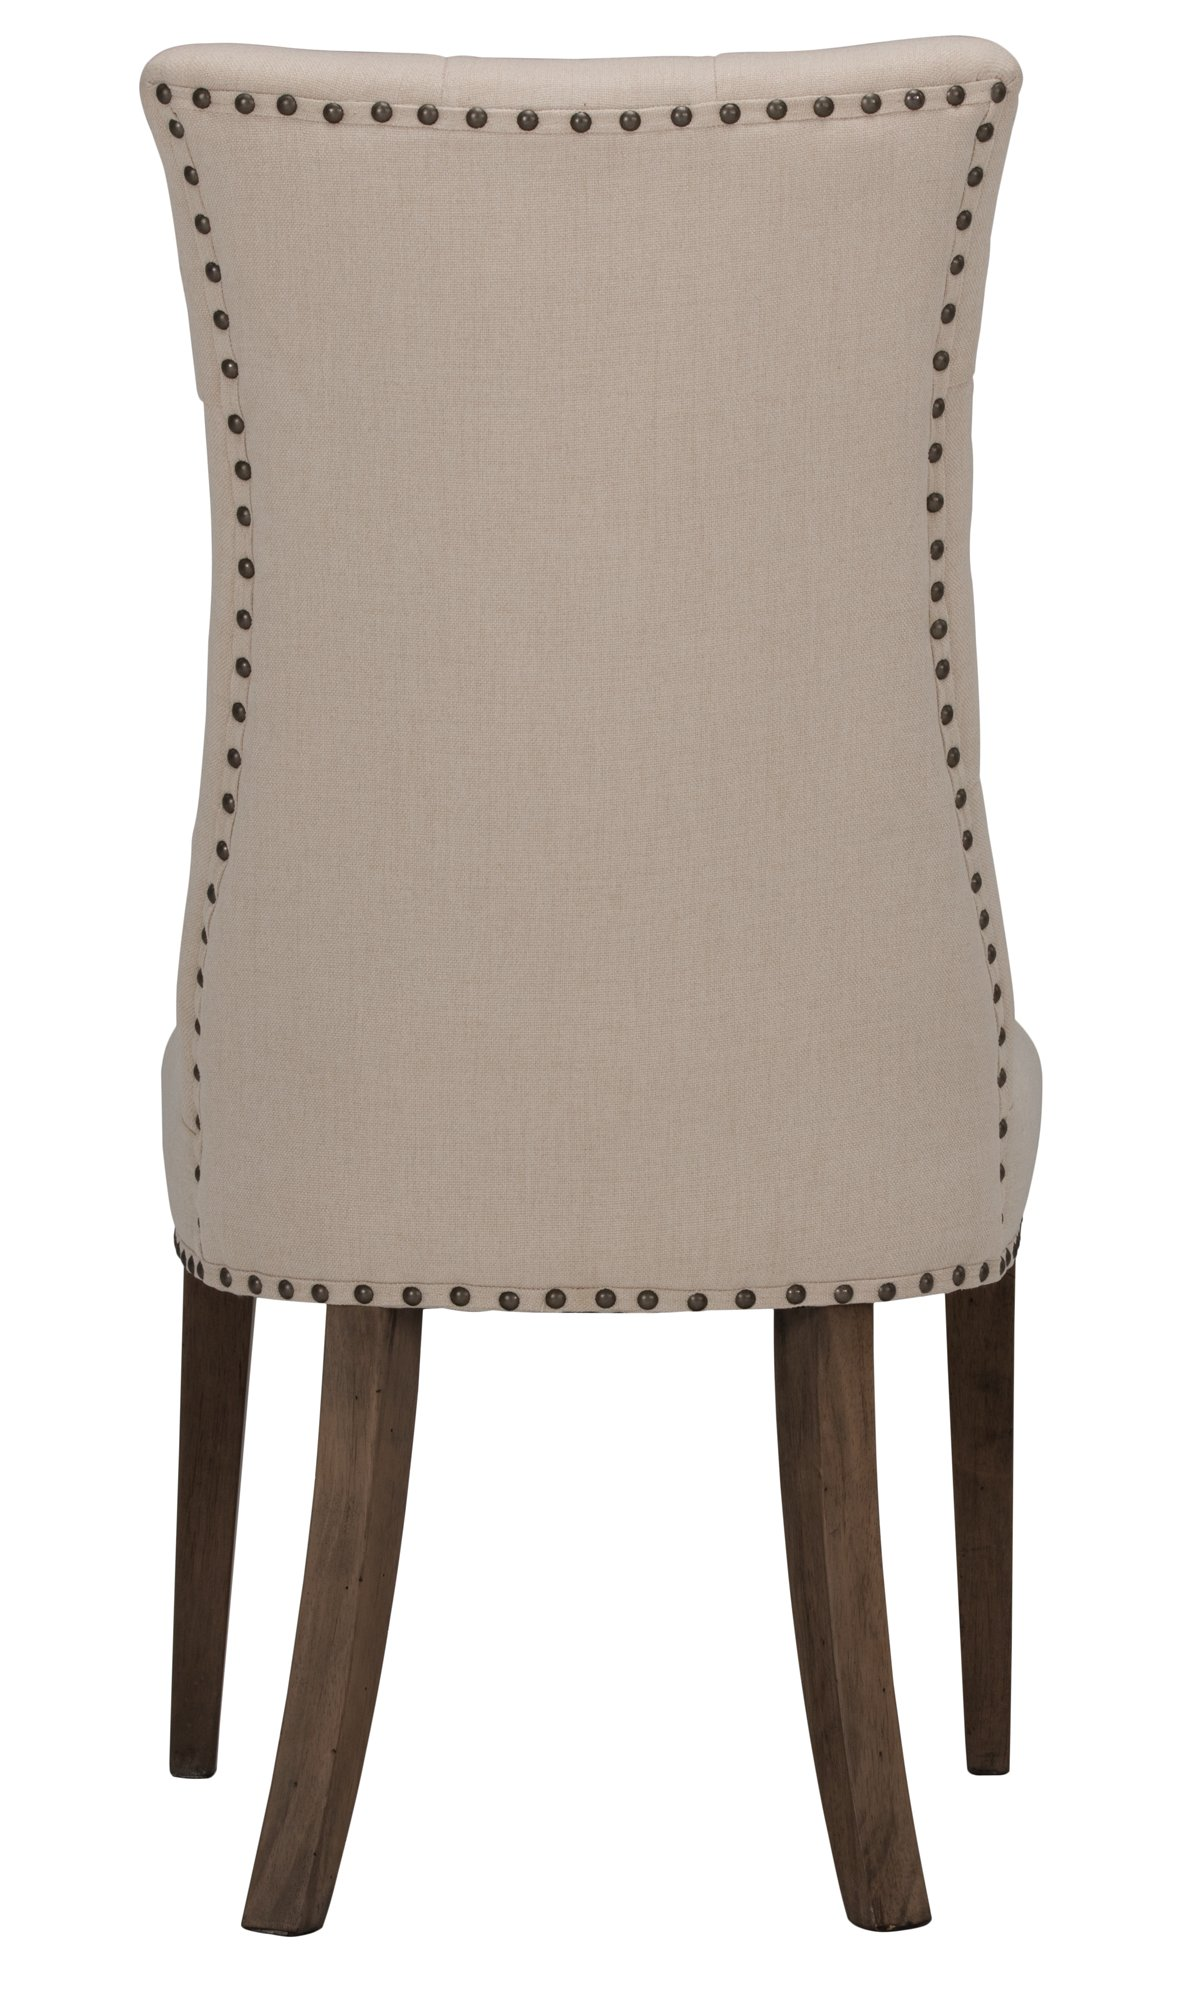 Haddie Light Tone Fabric Upholstered Side Chair